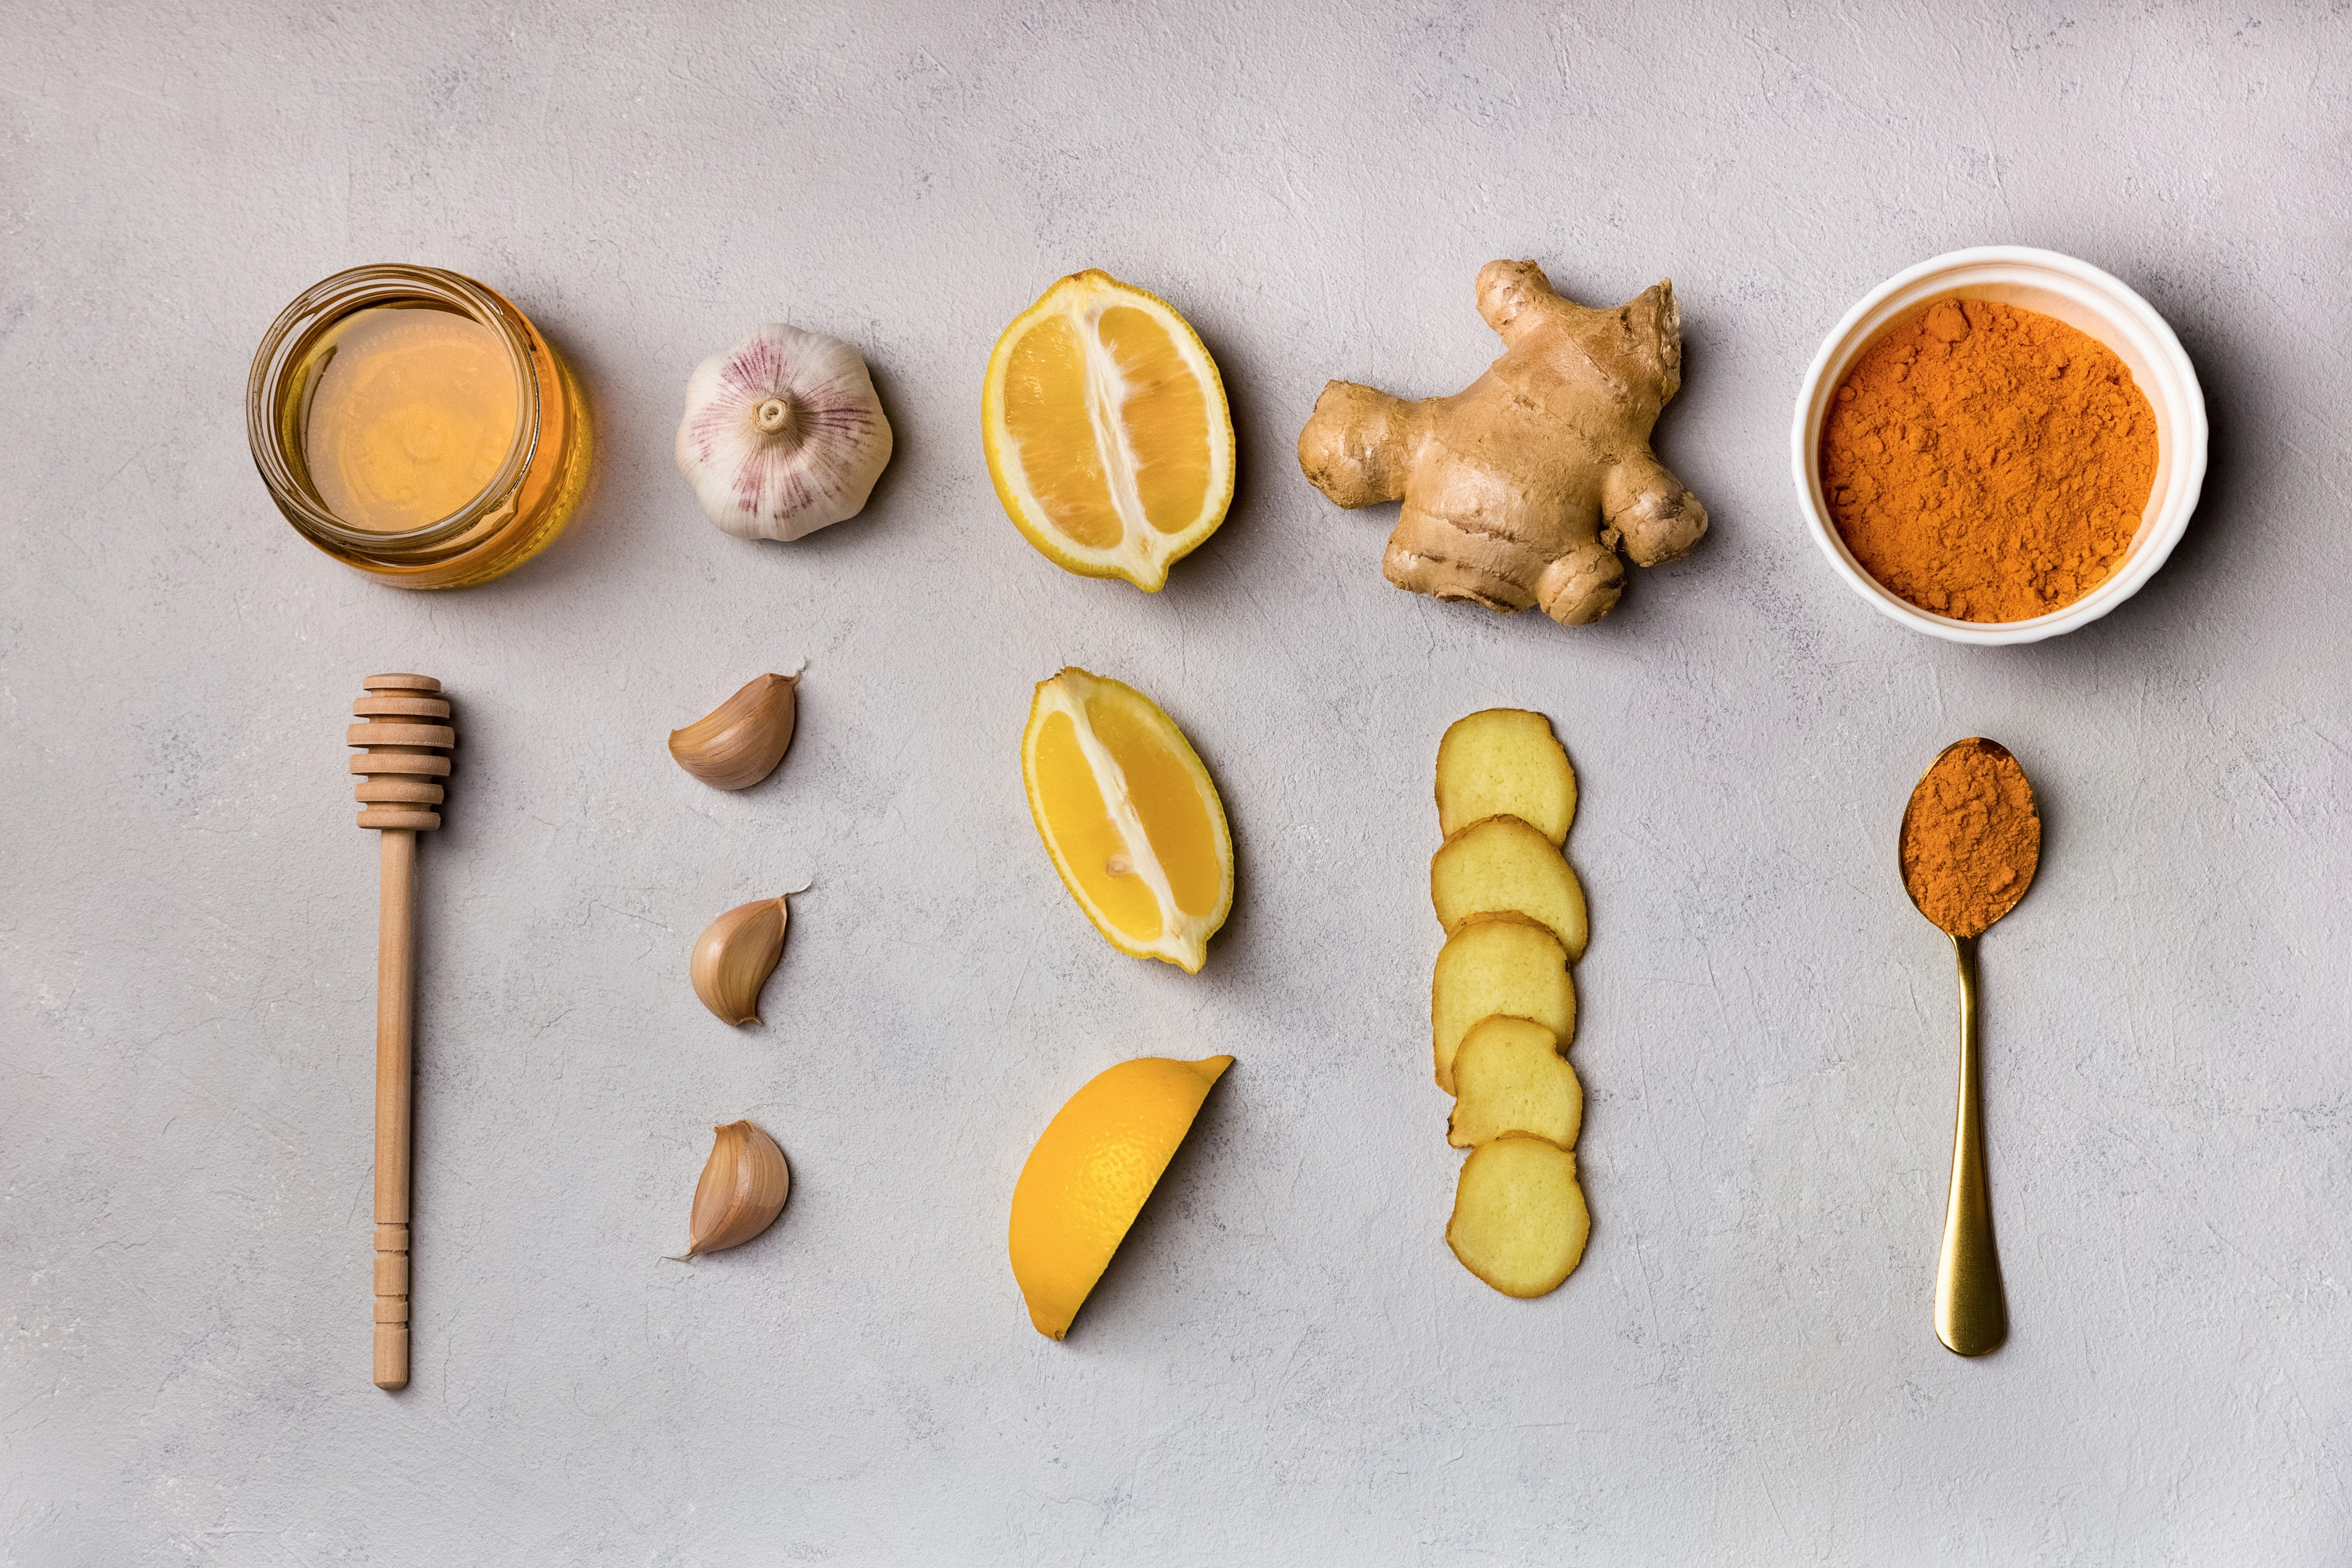 Ginger garlic turmeric honey lemon on table